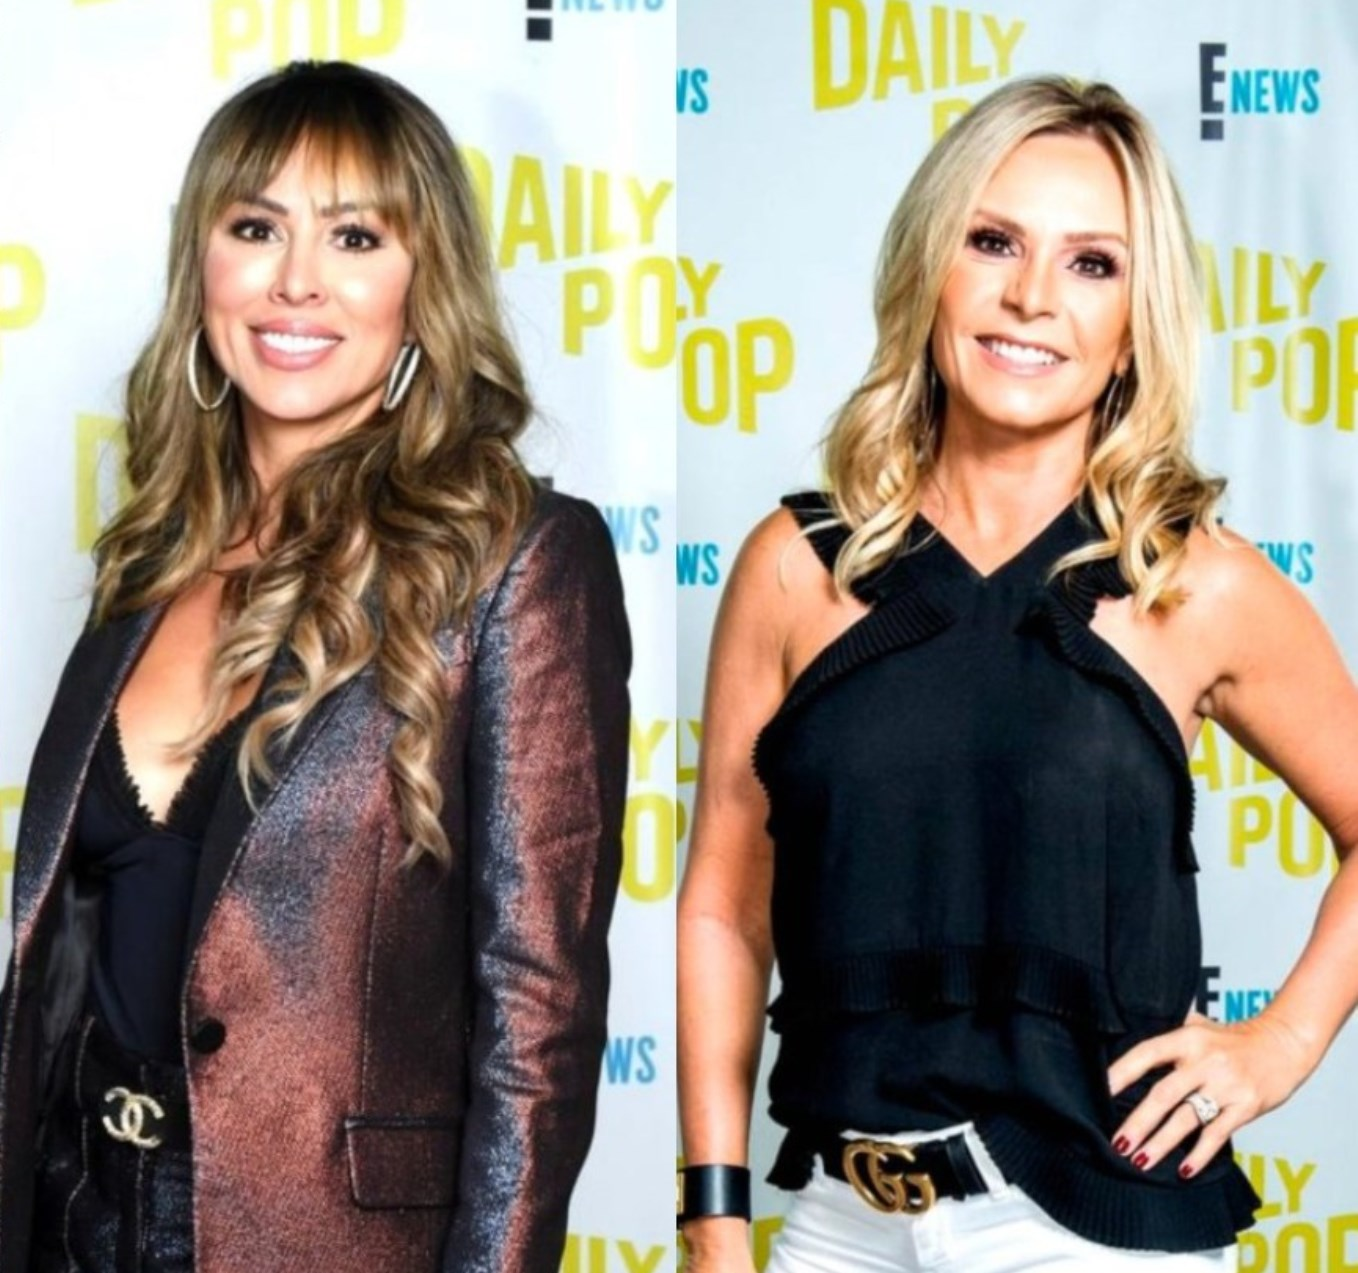 Kelly Dodd Slams Tamra Judge for 'Disgusting' Comment About Eddie and Disses RHOC Cast, Plus Daughter Jolie Meets Fiancé Rick Leventhal